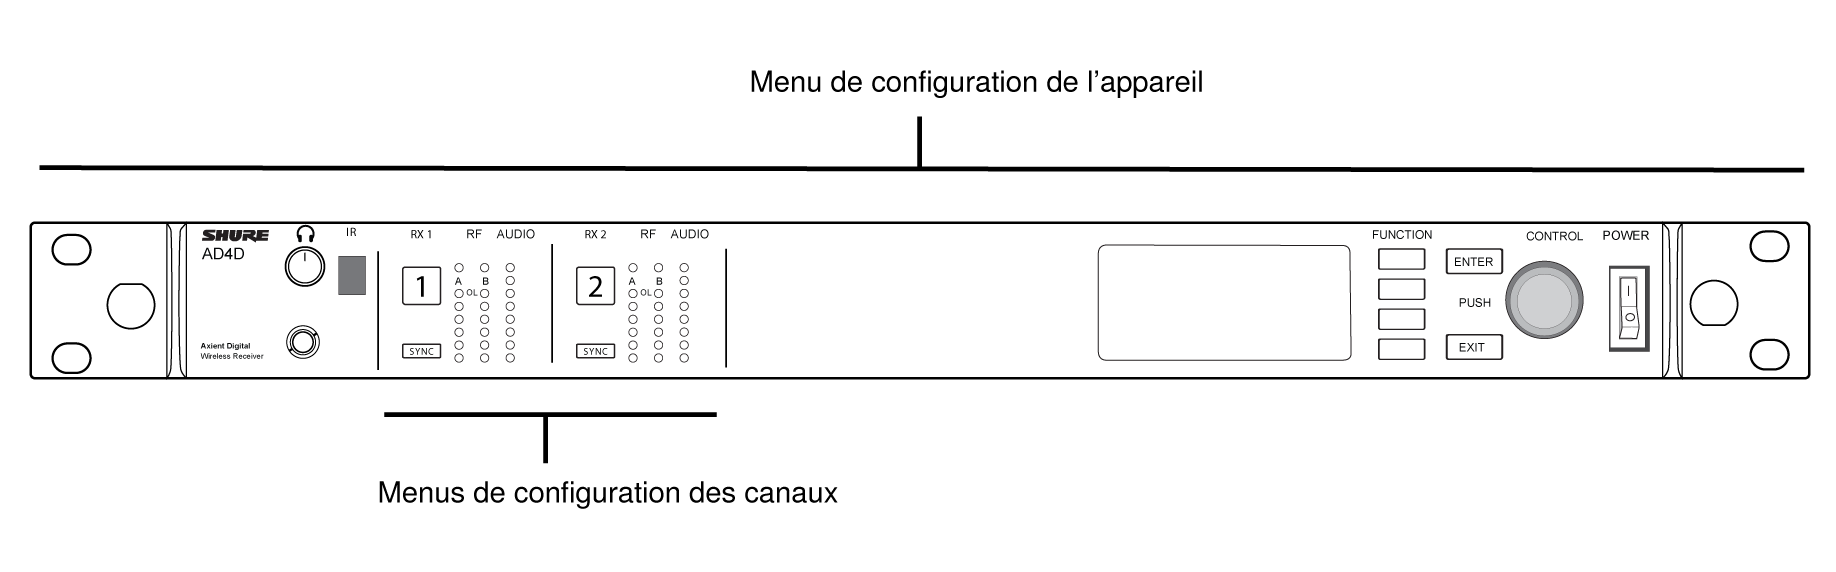 The receiver with a line indicating the device configuration menu and the channel configuration menu